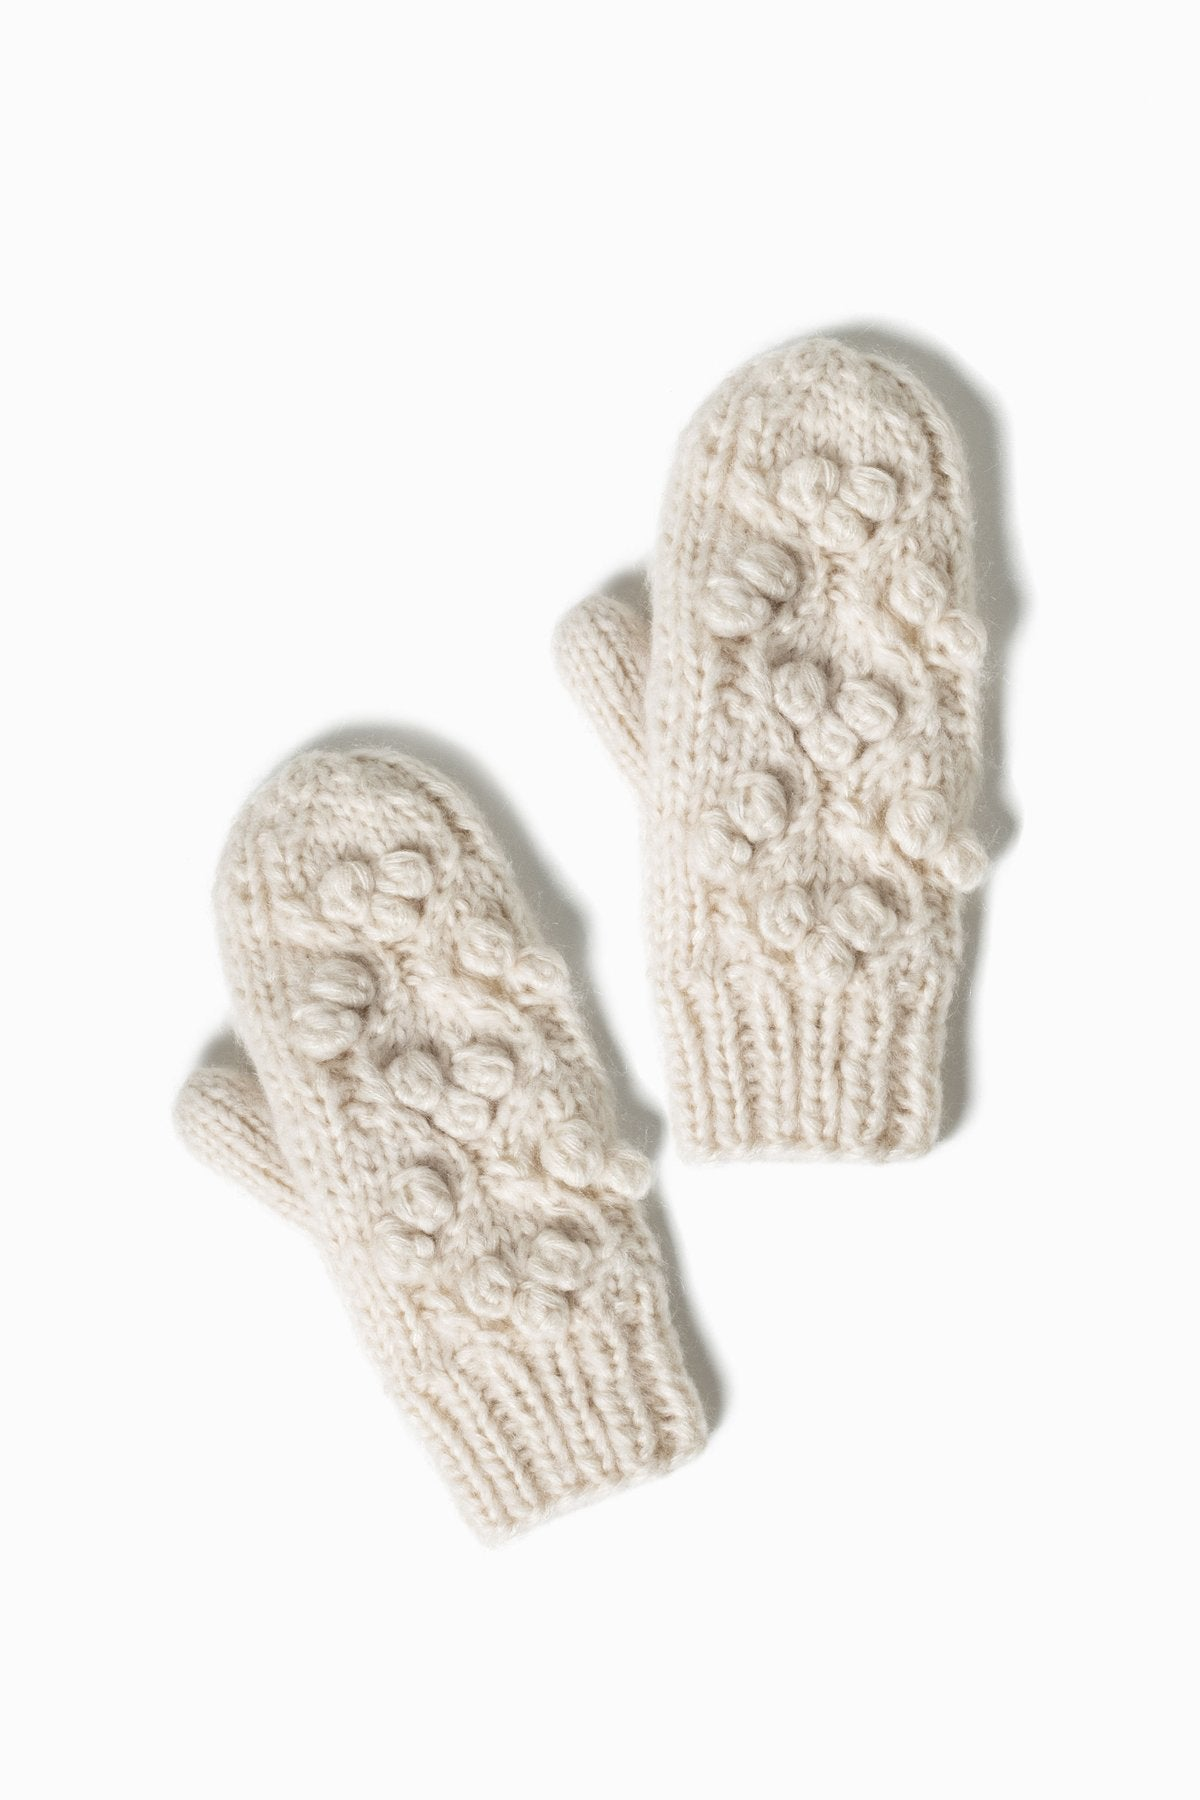 Little Snowball Cable Mittens in Ivory